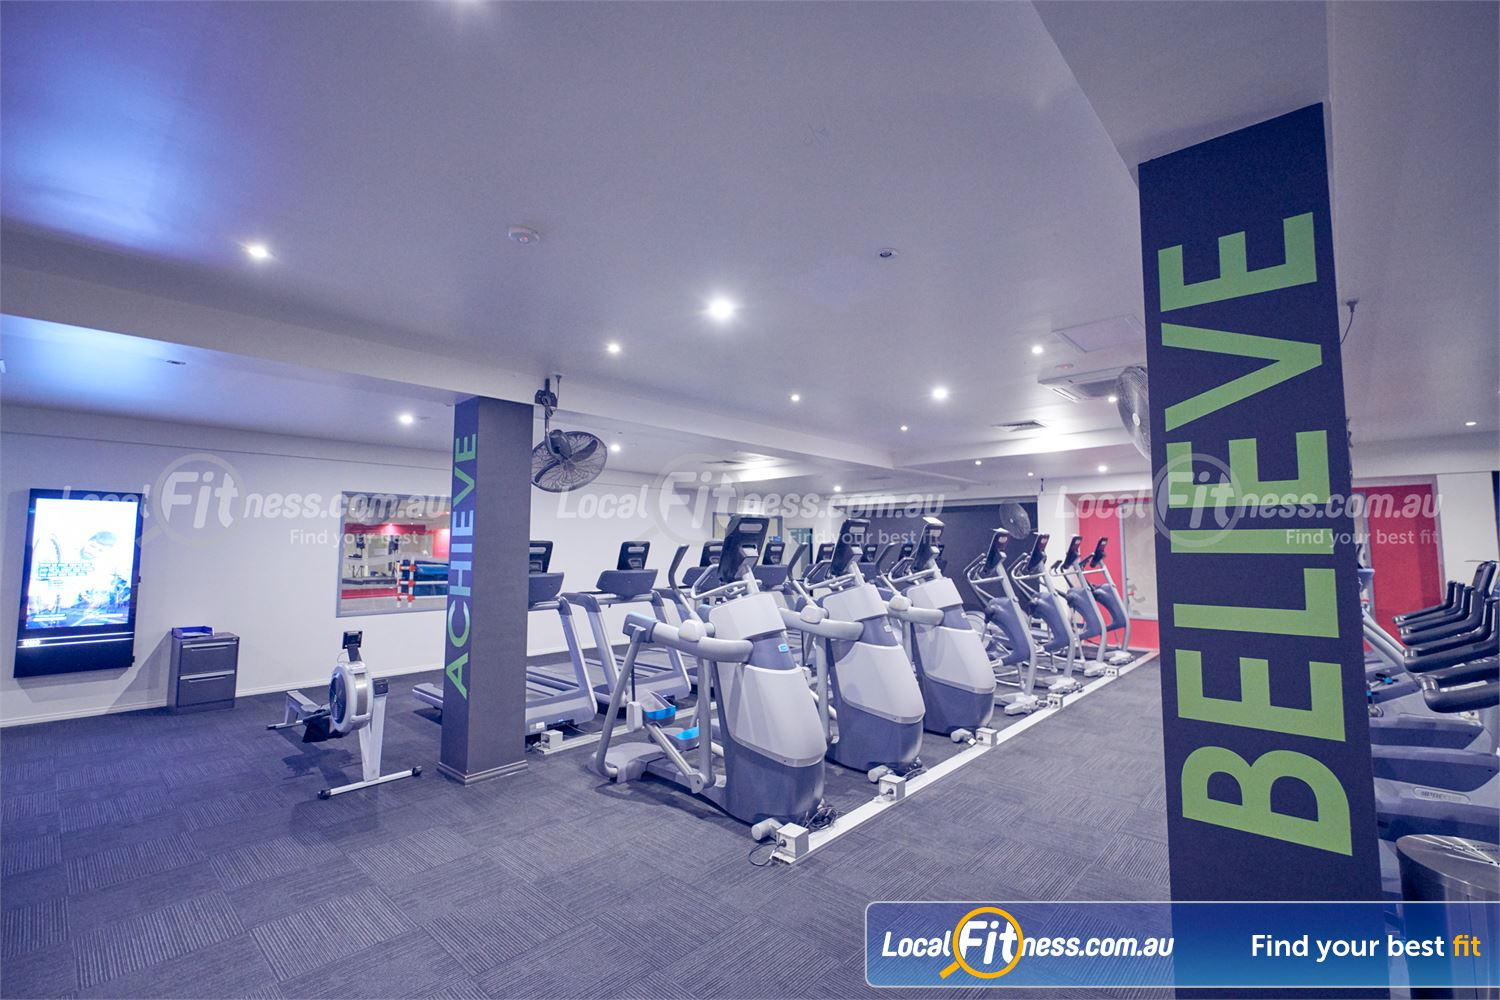 Fernwood Fitness Near Doncaster Our Fernwood Bulleen 24 hour gym is open around the clock. 24 hours a day.